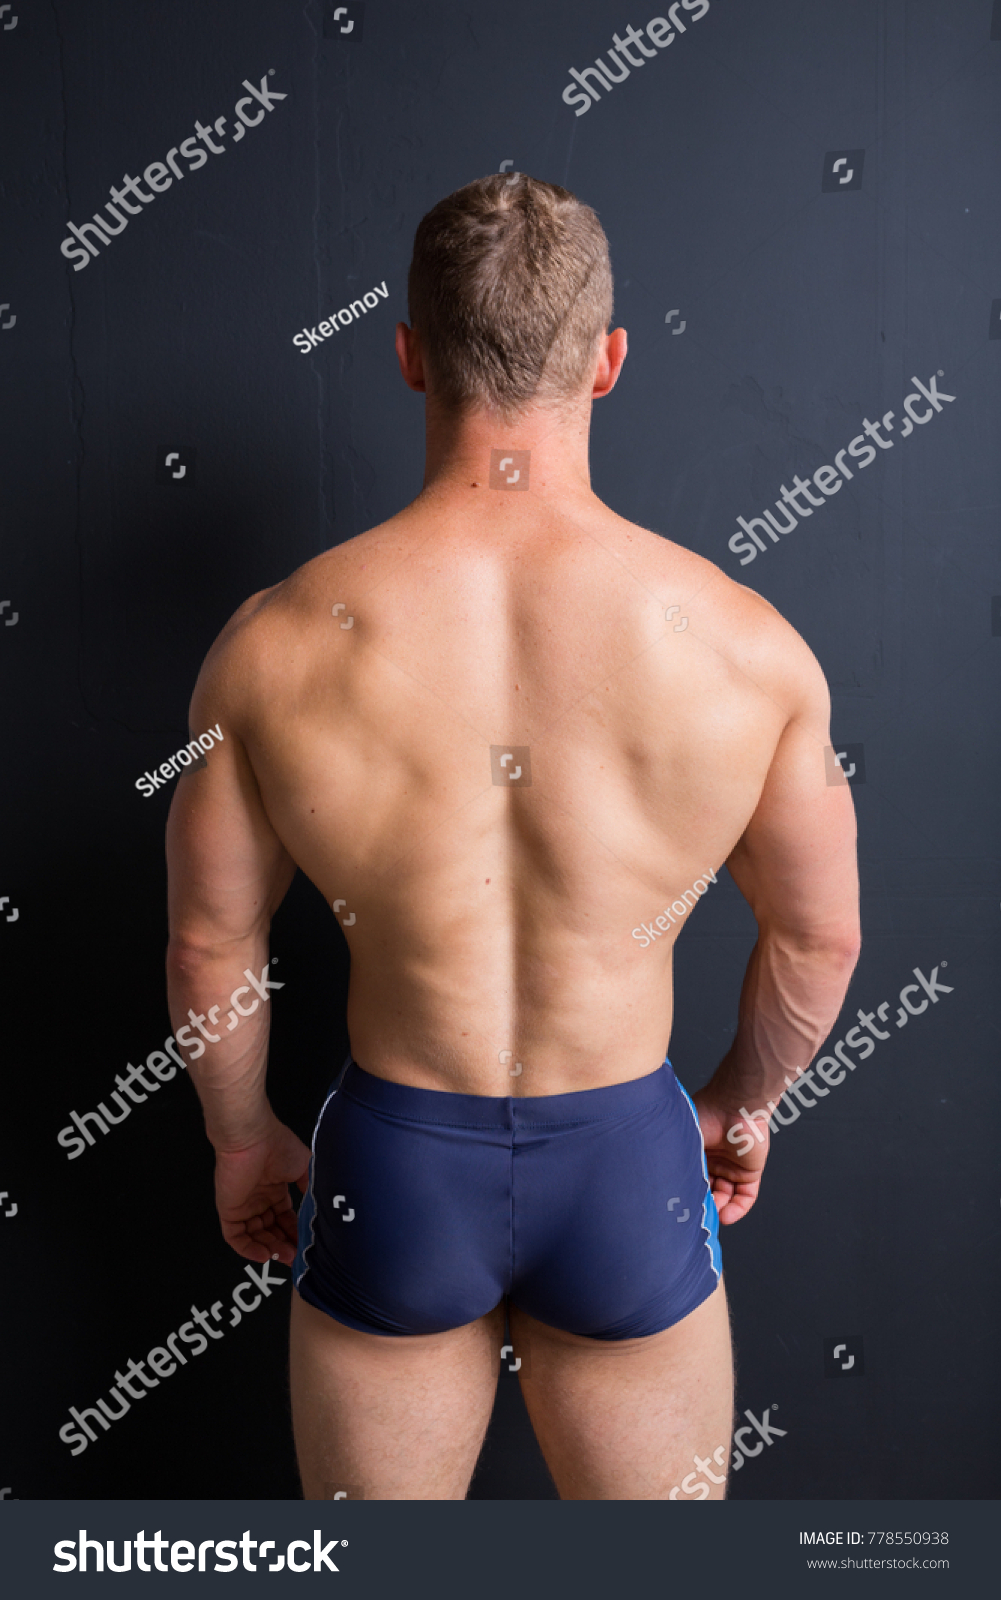 young athletic male with an athletic figure. part of body: back is broad,